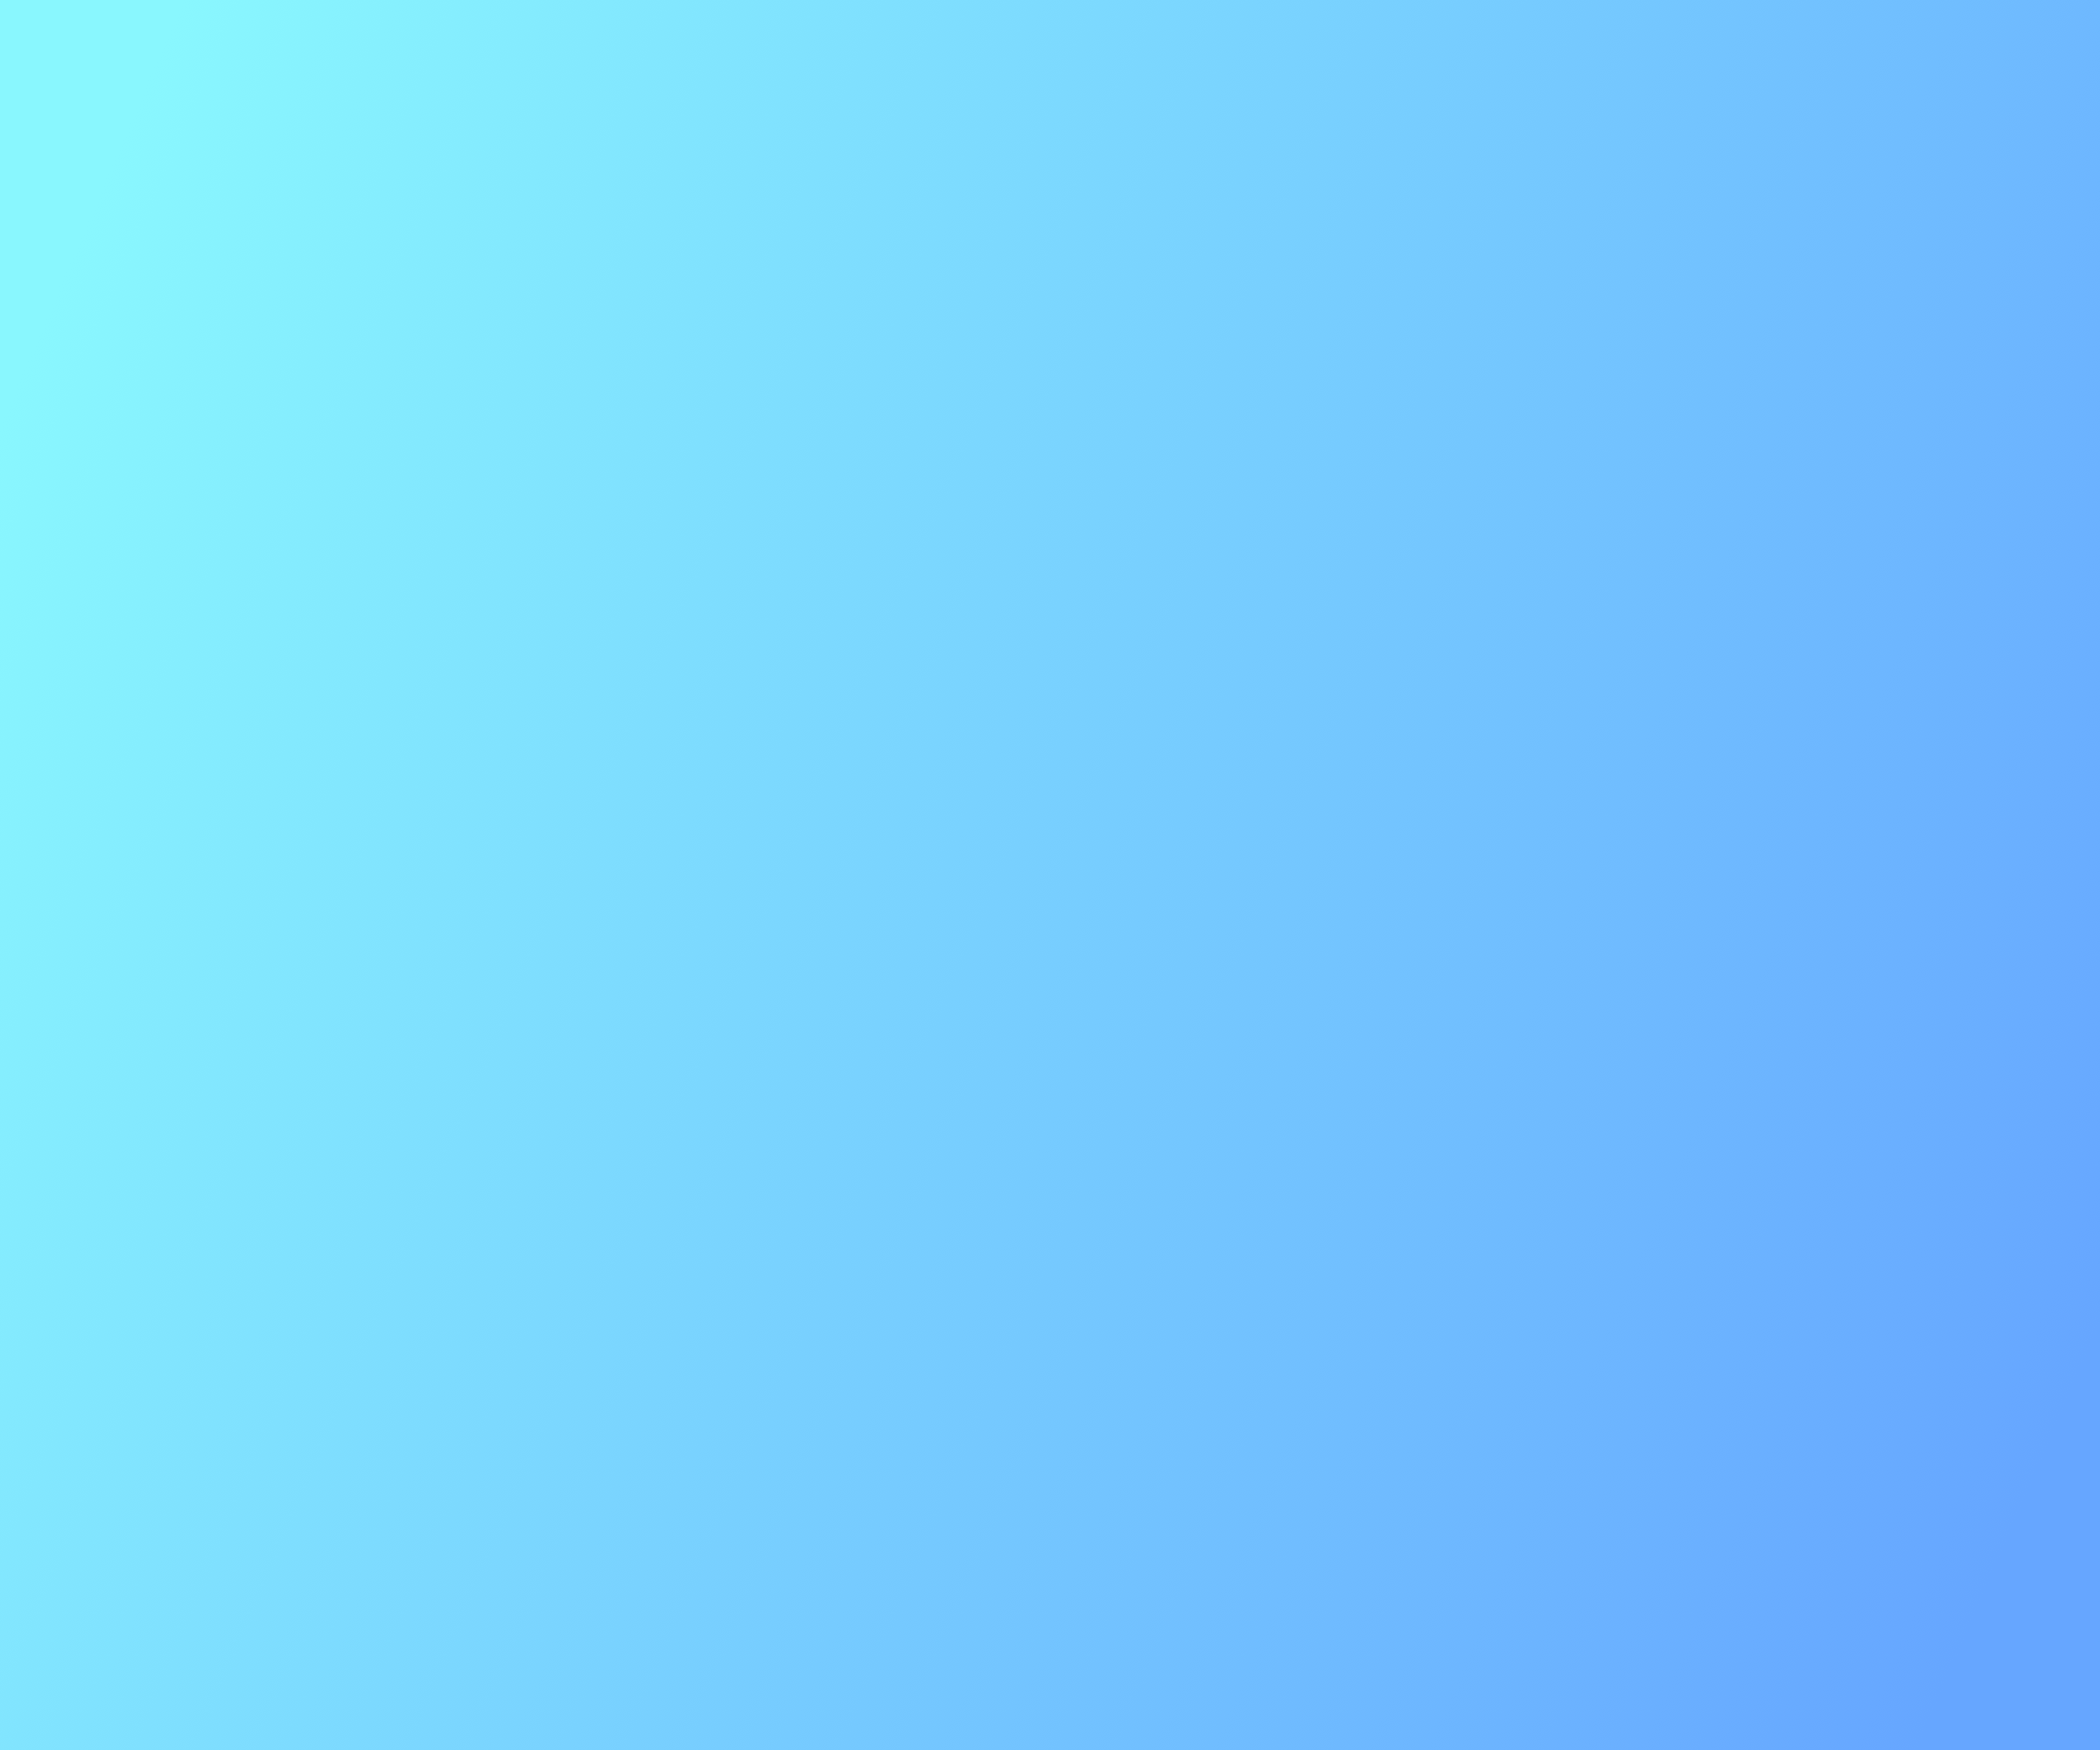 0ab164ccd8 Fresh Background Gradients